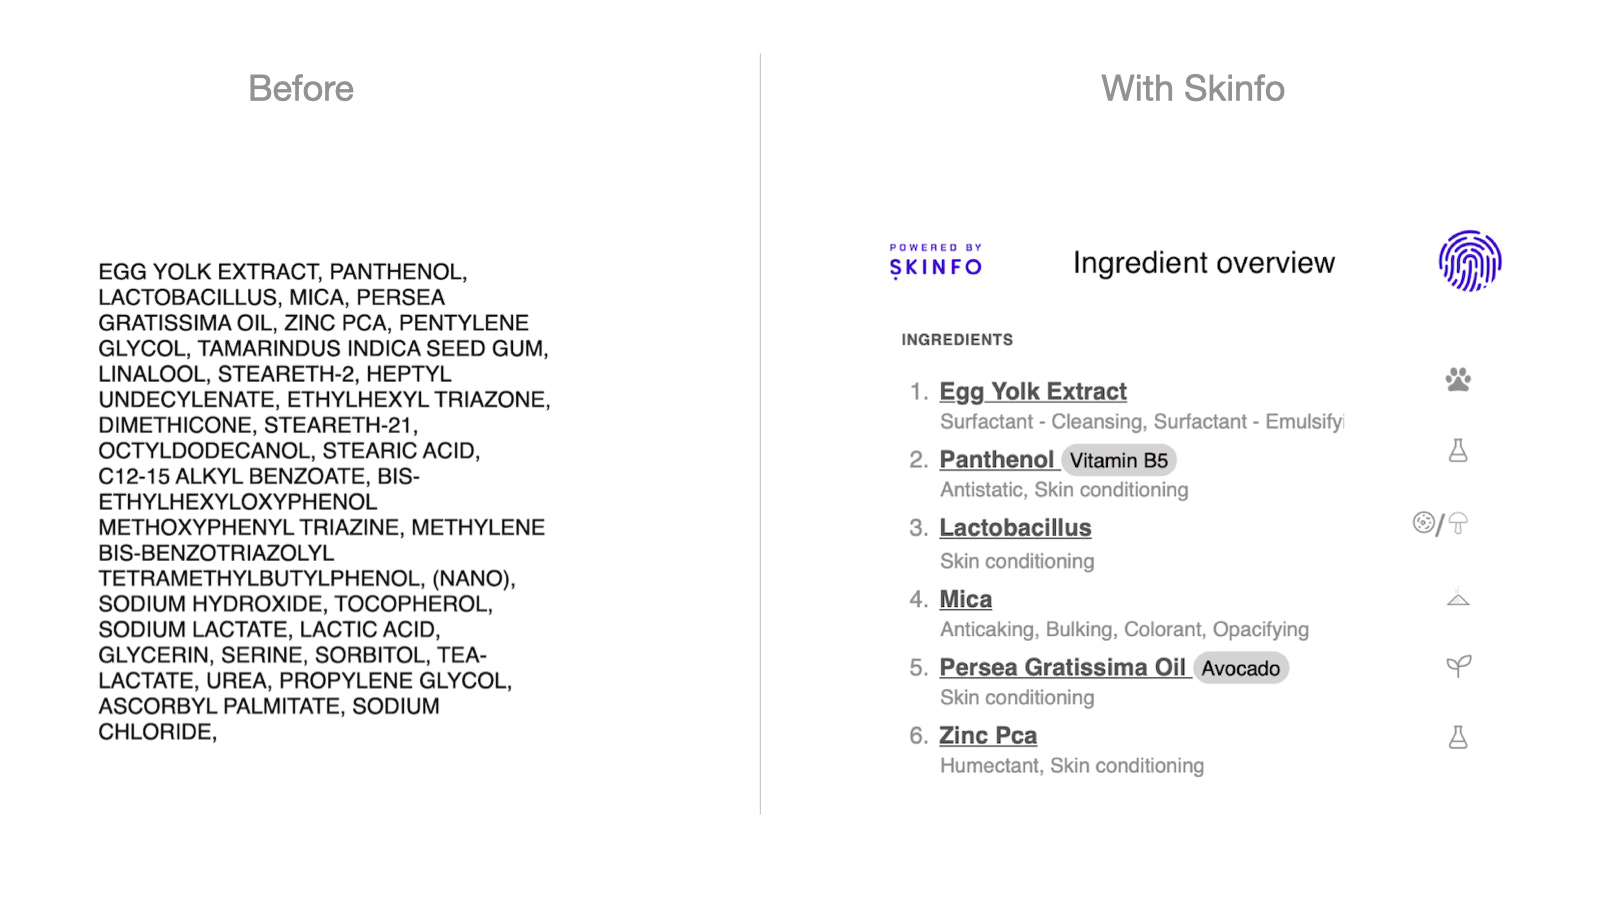 Normal Ingredient List VS With Skinfo